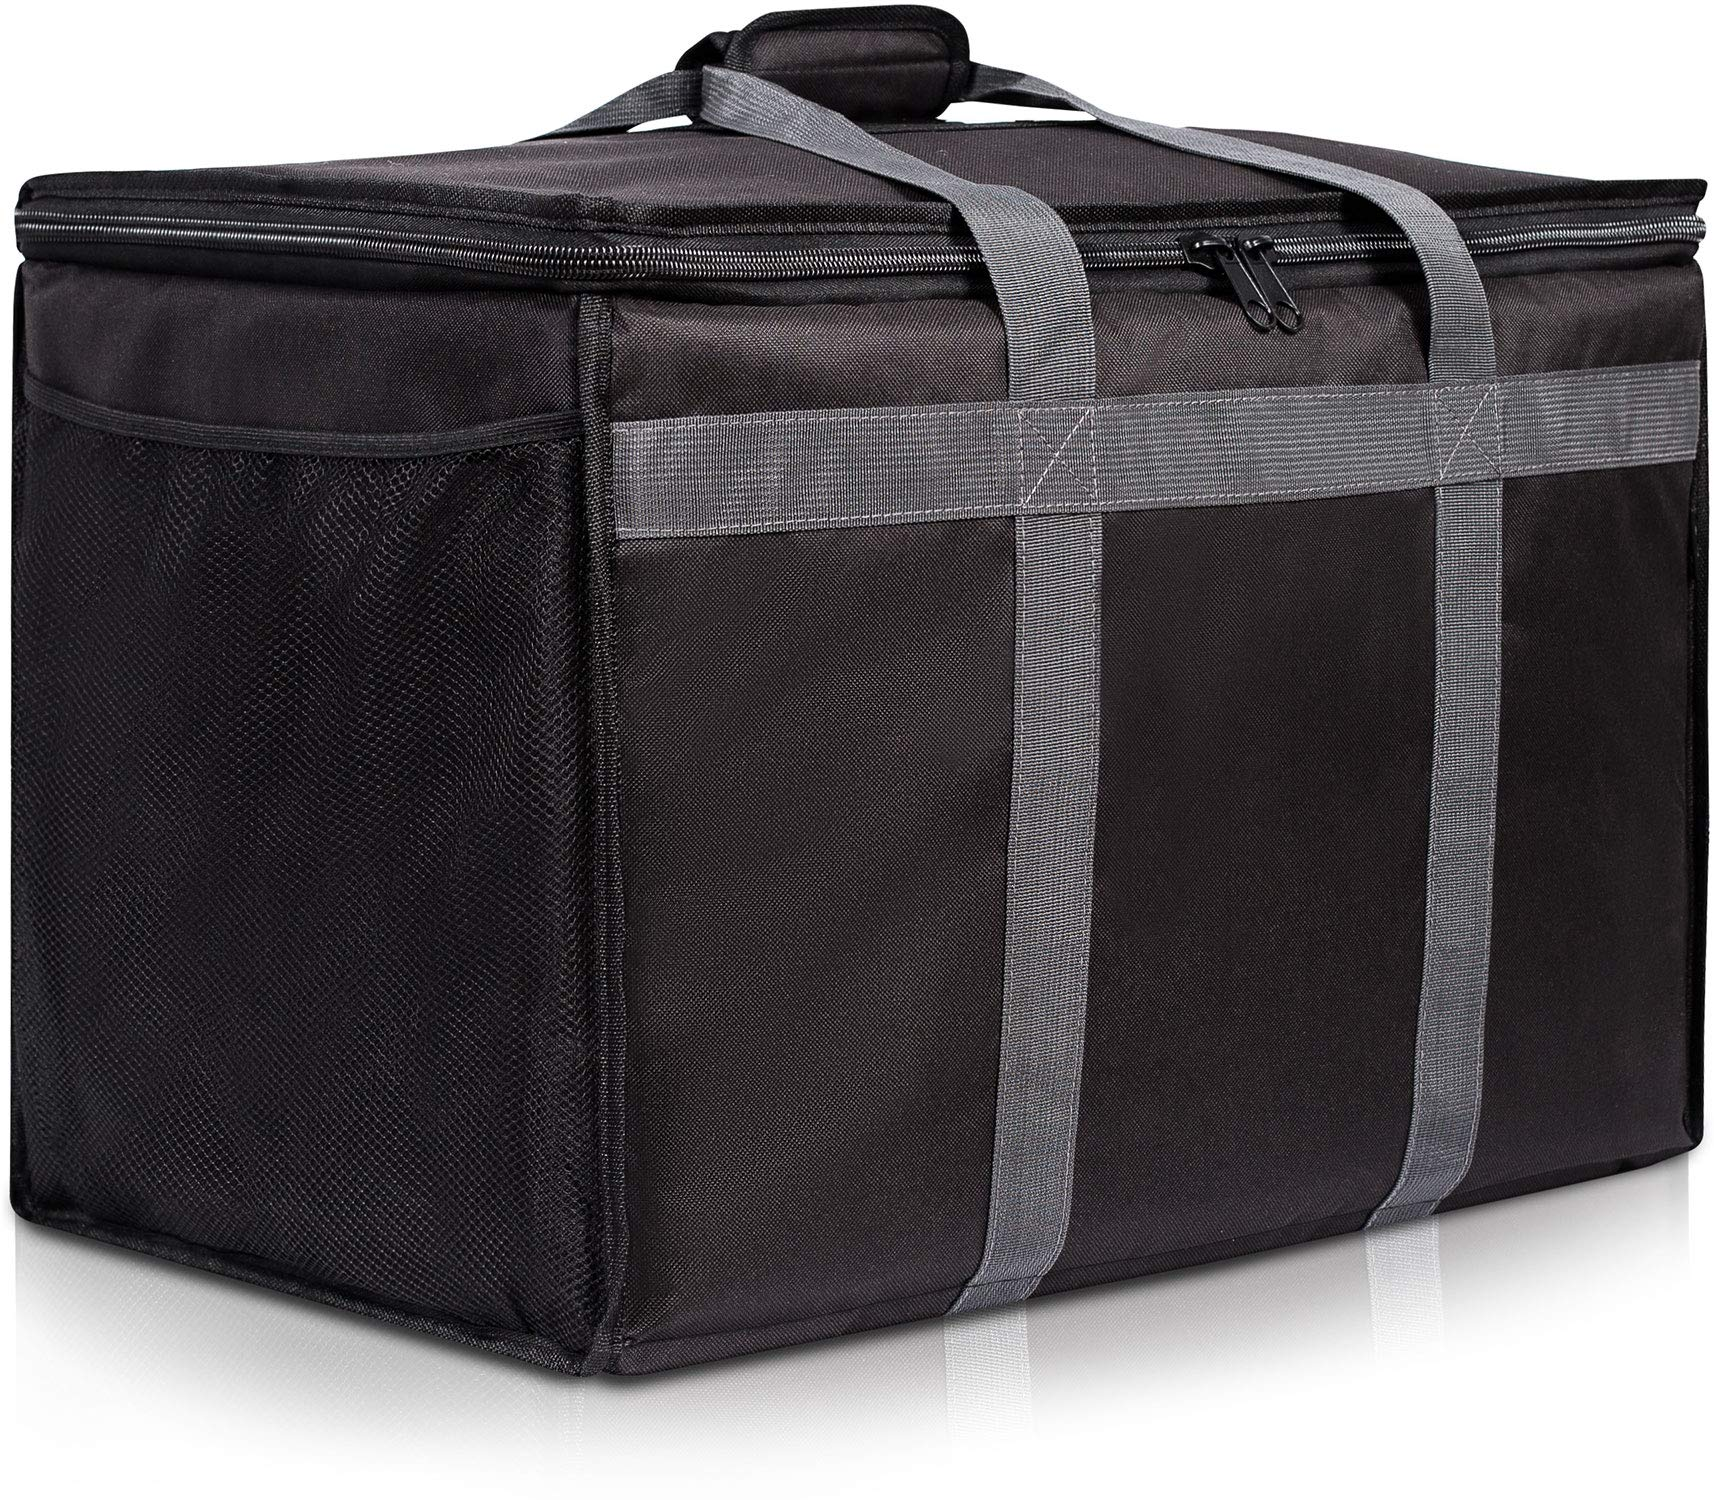 Insulated Commercial Food Delivery Bag with Side Pockets - Professional Food Warmer Portable Catering Hot/Cold Meals - Thick Insulation Cooler Bag Uber Eats, Doordash, Grocery Shopping - 23 x 15 x 14